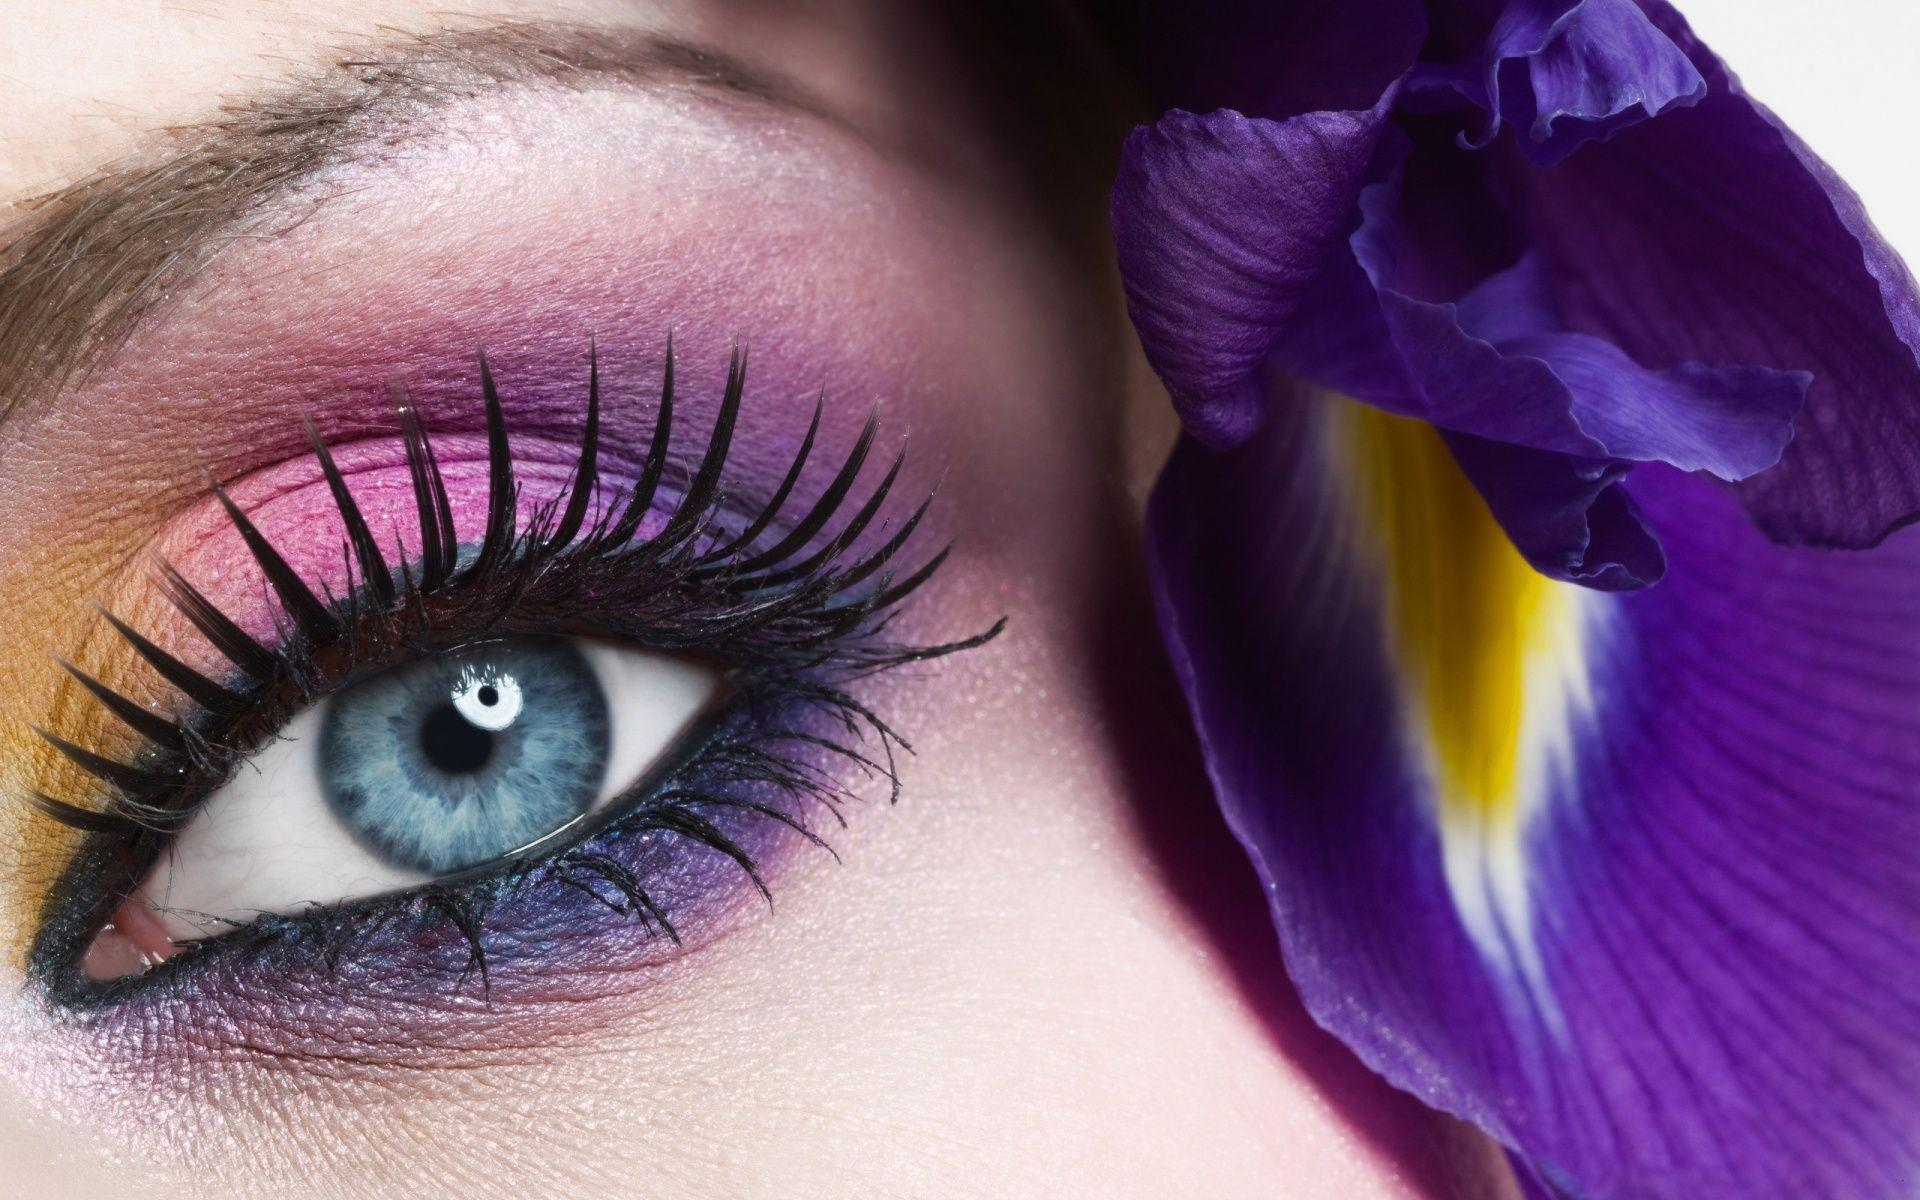 20 Fantastic HD Makeup Wallpapers - HDWallSource.com